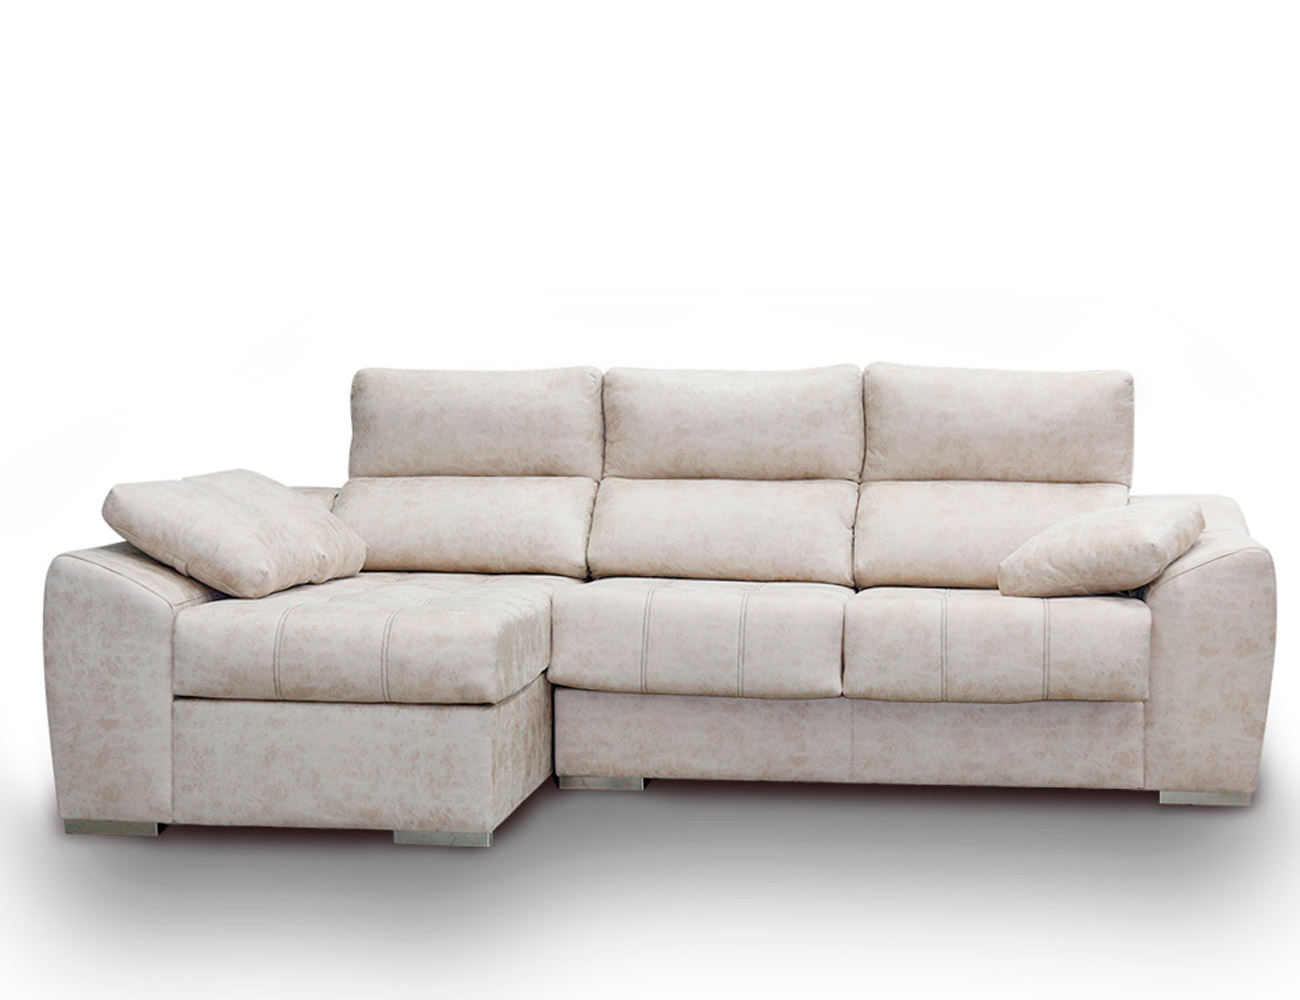 Sofa chaiselongue anti manchas beig blanco5